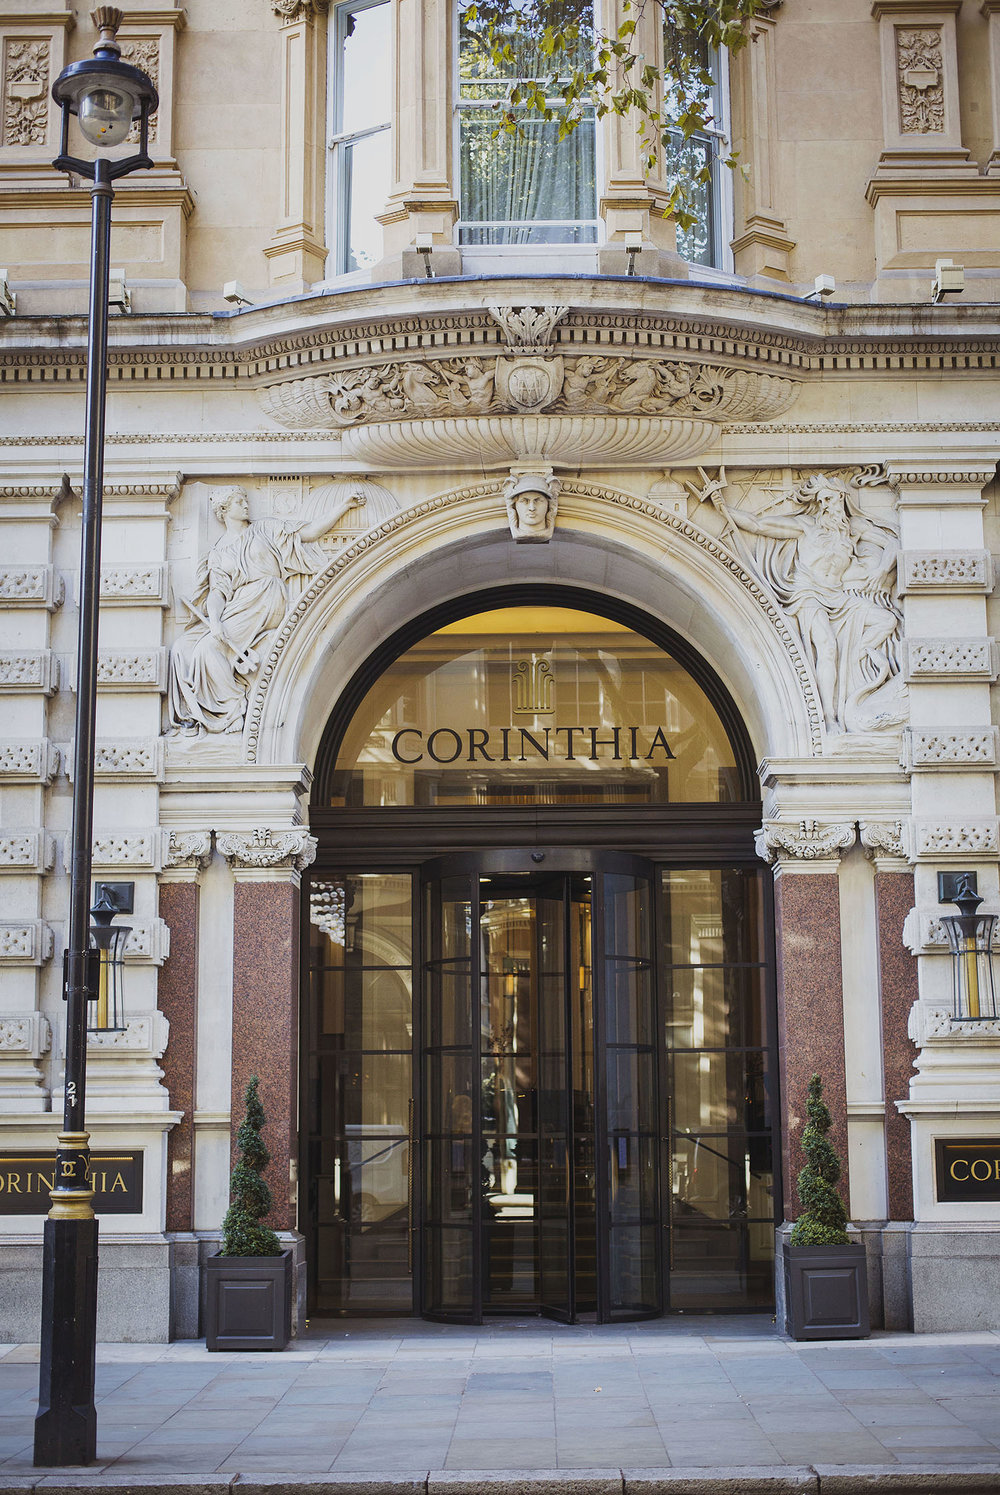 Corinthia hotel entrance Corinthia hotel wedding photographer